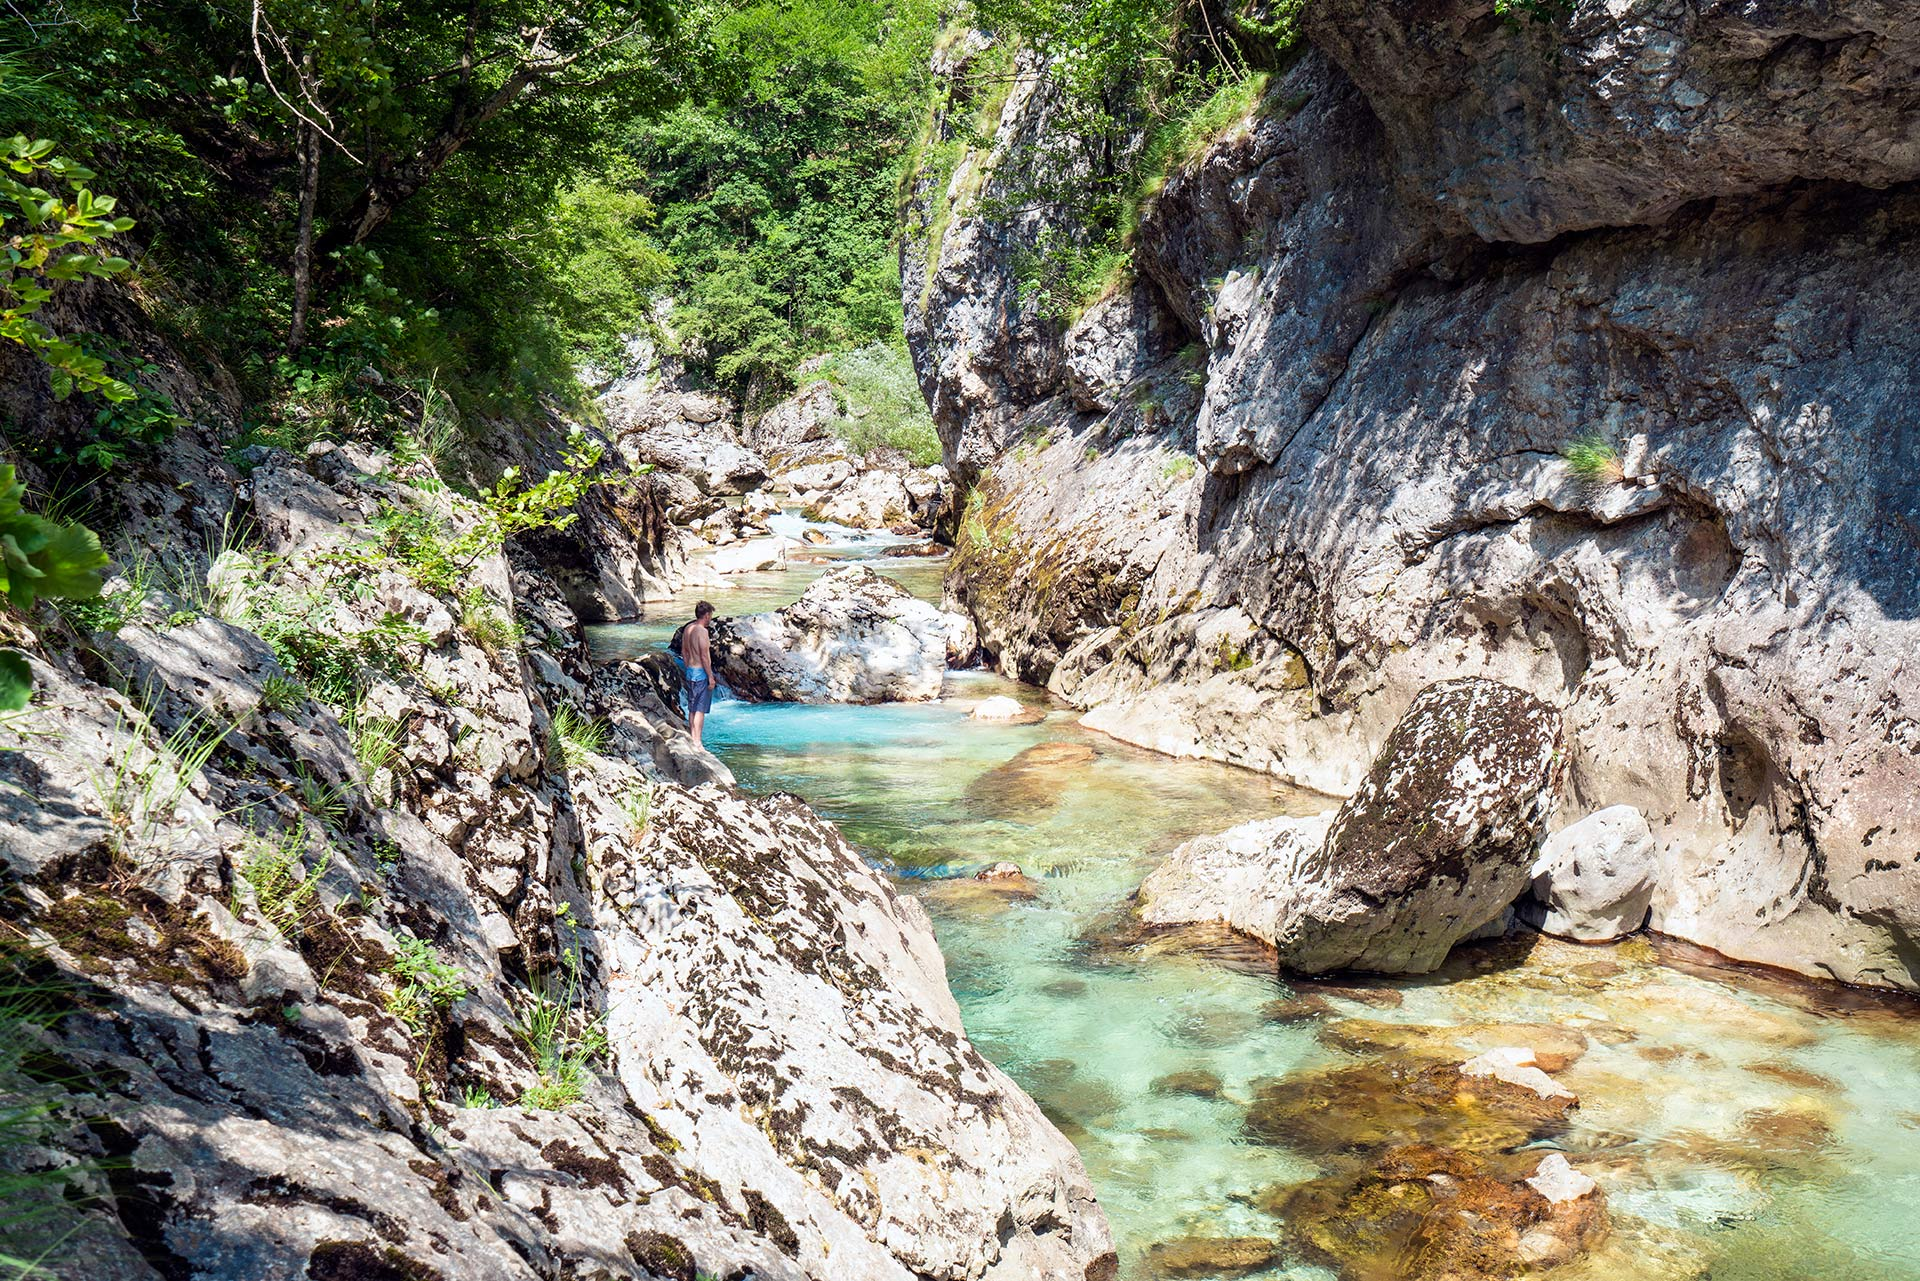 Secret swimming spot in Rakitnica Canyon